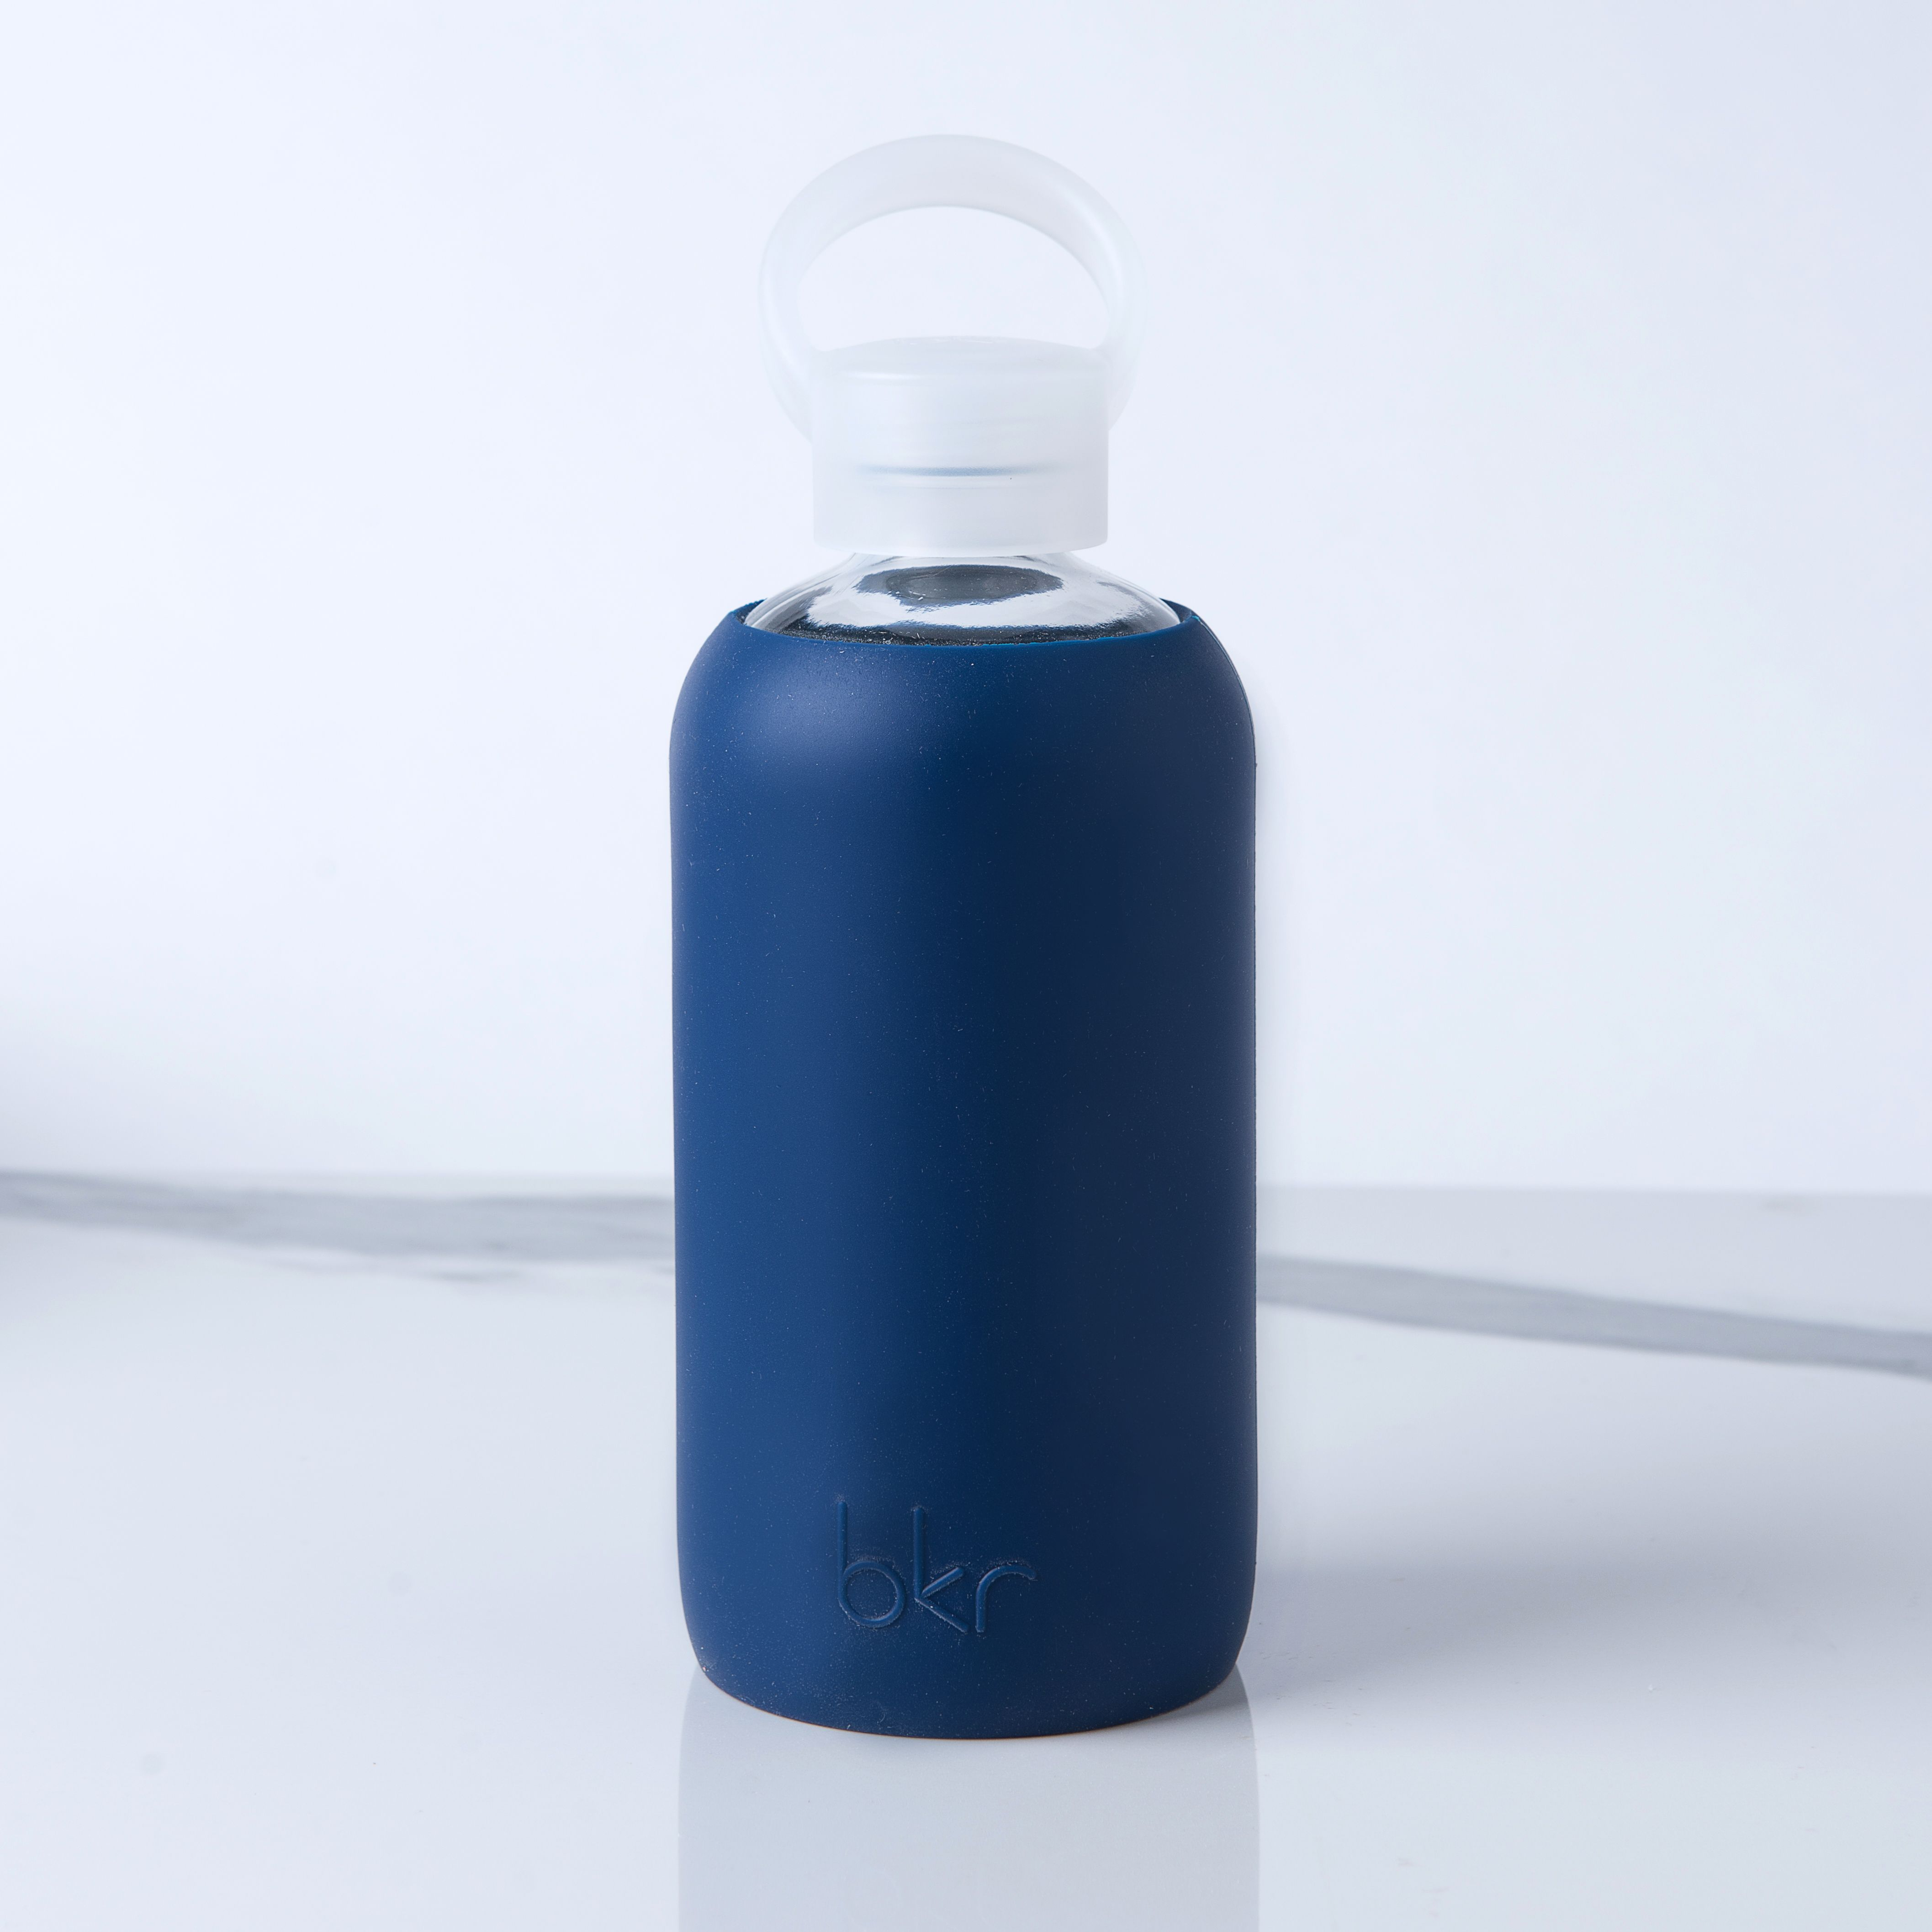 27ab0a2b44 bkr - Fifth Avenue 500 ML Water Bottle This deep blue, reusable bottle is  made